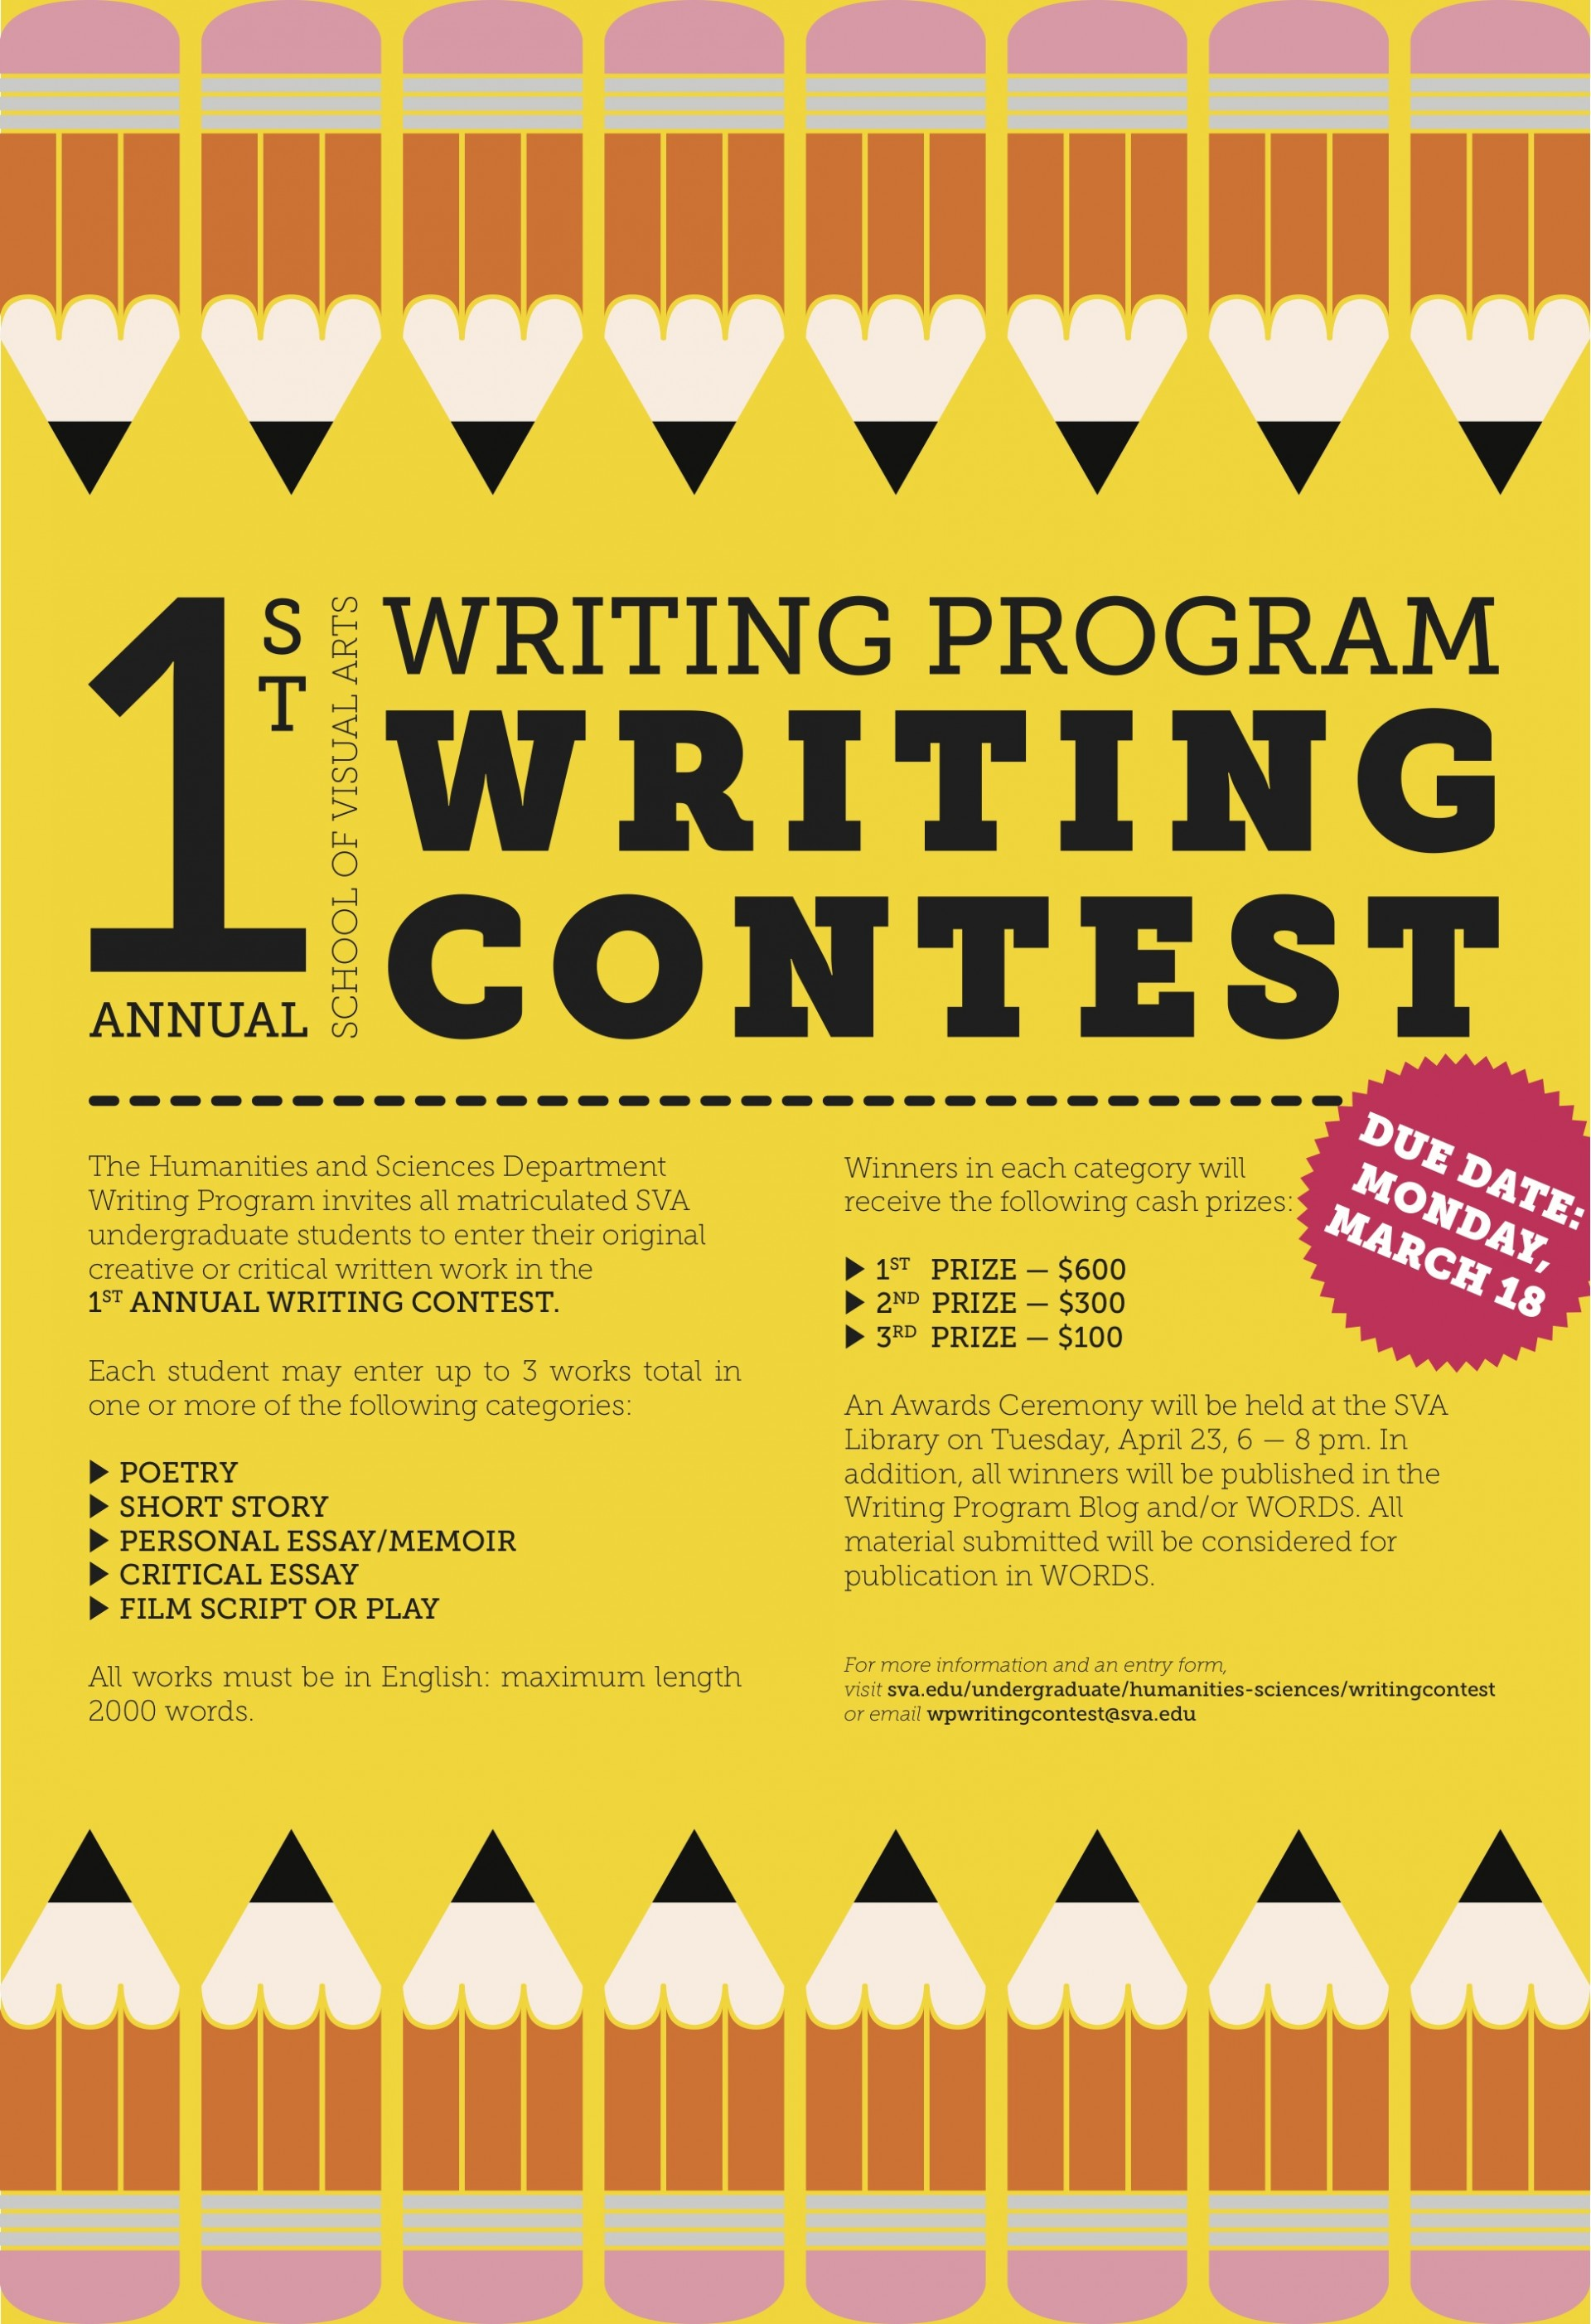 010 Essay Writing Blog 1st Annual Sva Program Contest Criteria Objectives Rubrics Tips Philippines For Nutrition Month Guidelines Mechanics Incredible Free Contests 2018 International Competitions High School Students India 1920